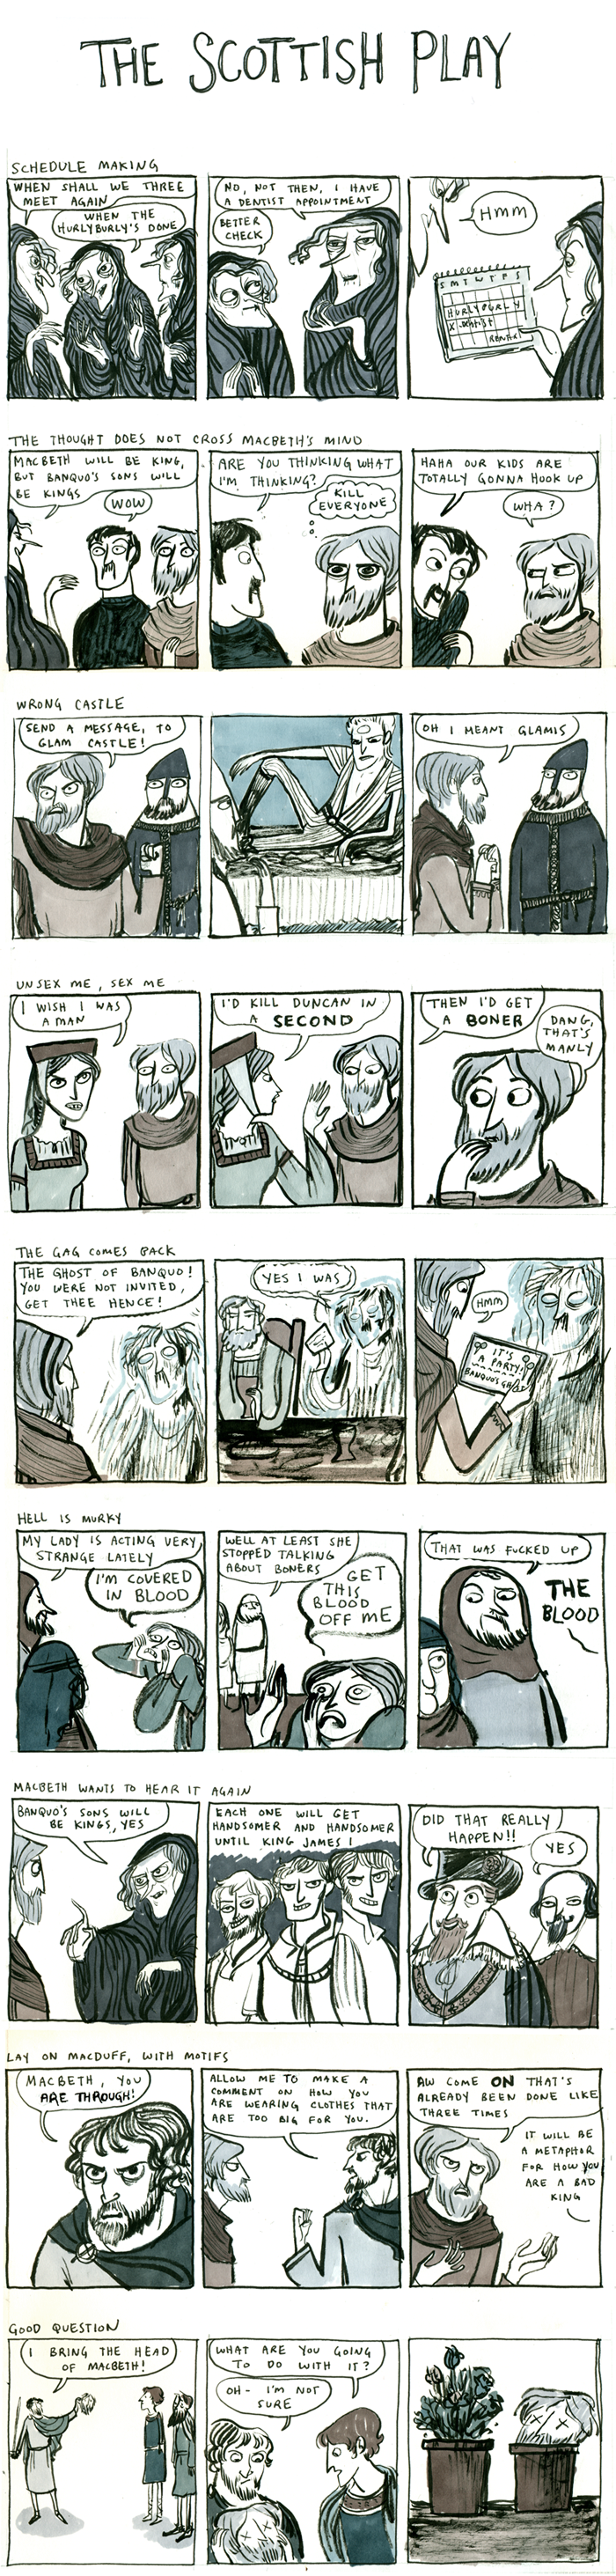 Macbeth comic. Some editing needed, but it's pretty hilarious and dead-on to the play.